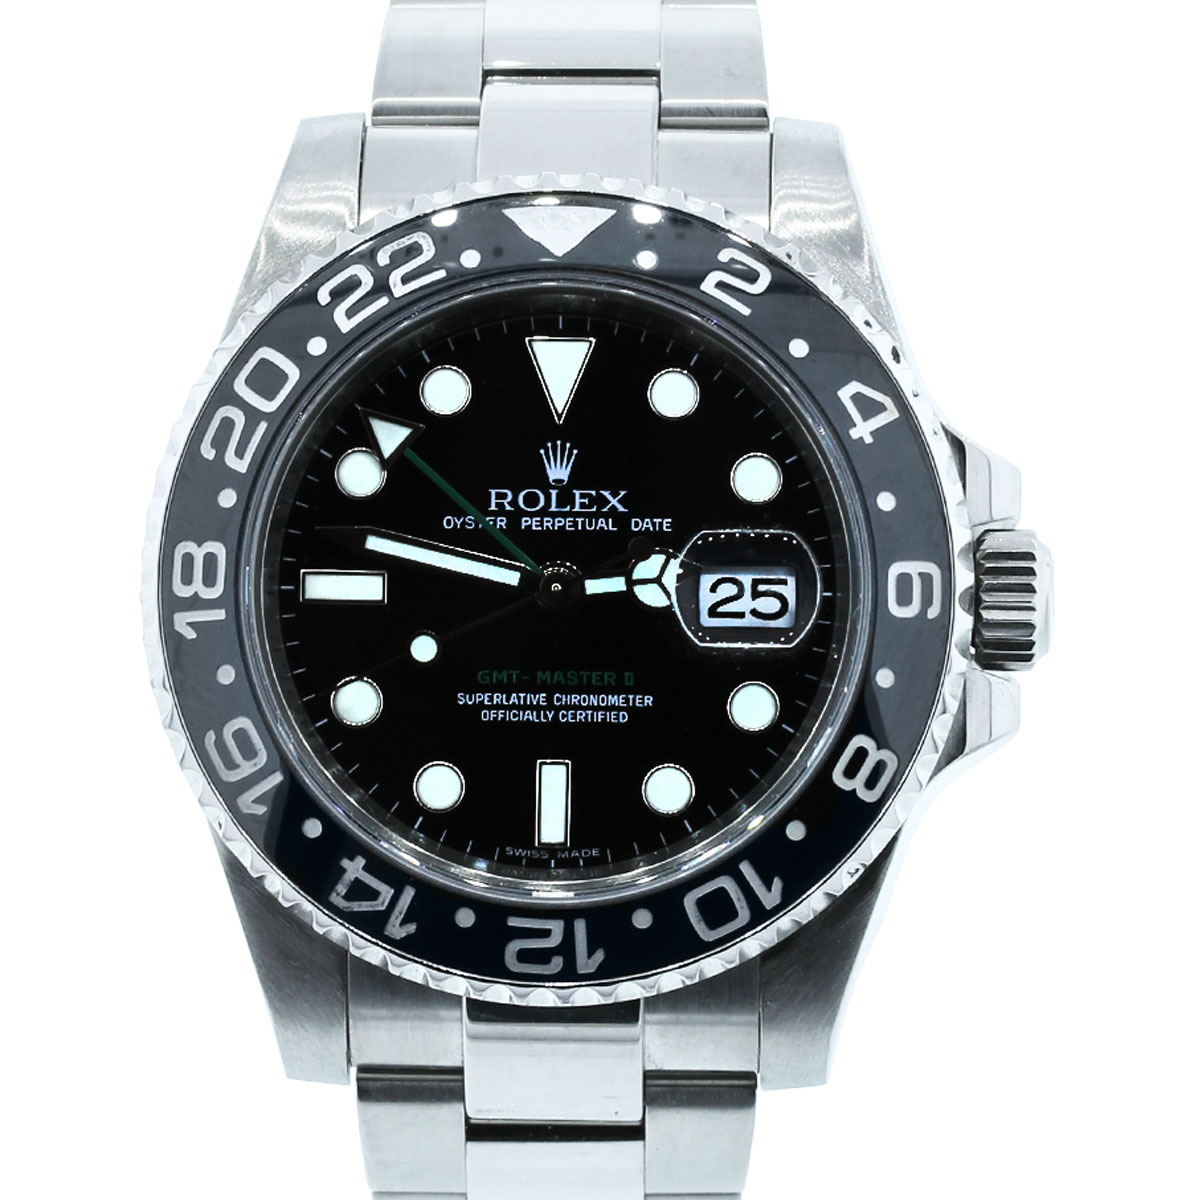 You are viewing this Rolex GMT Master II 116710 Steel Ceramic Bezel Watch!